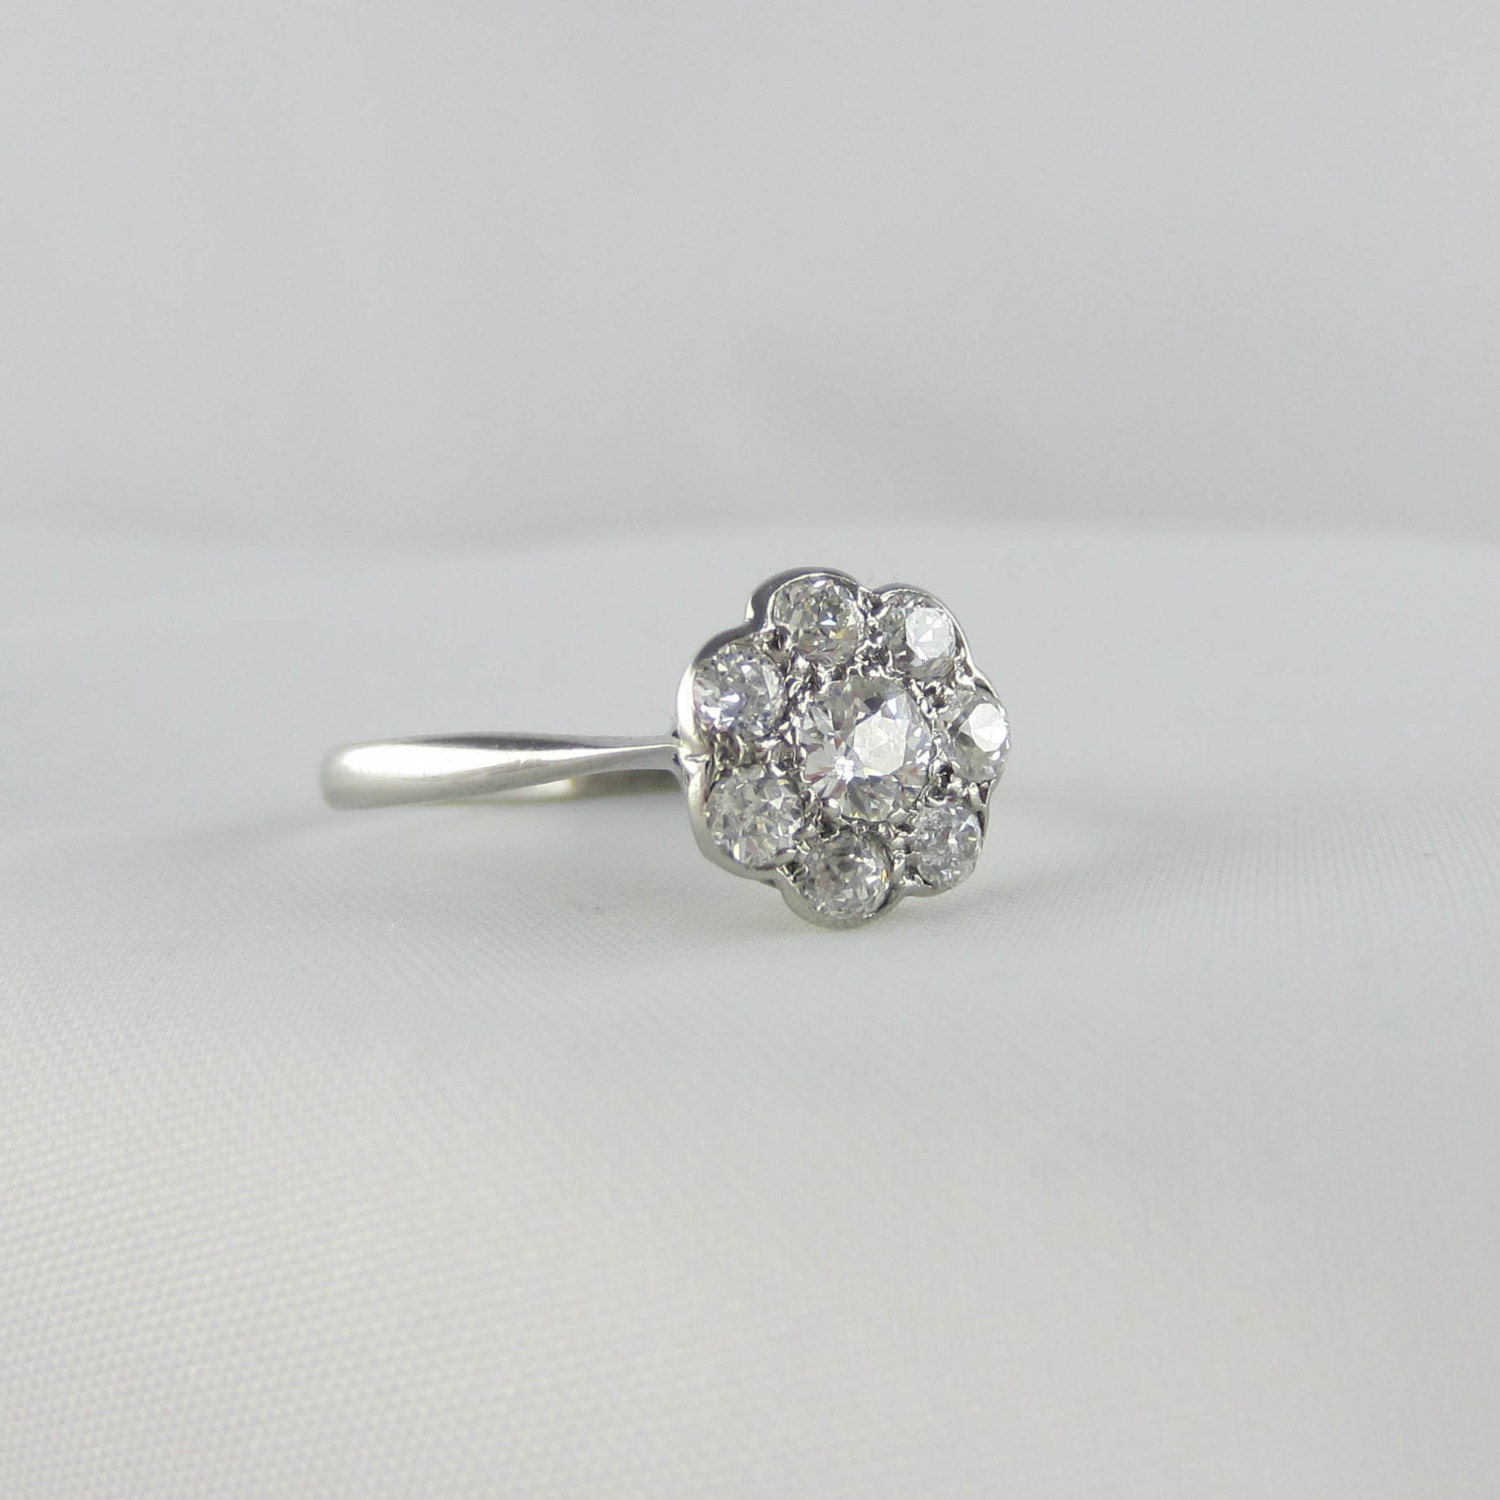 Art Deco Diamond Daisy Engagement Ring Flower Shape By Addy